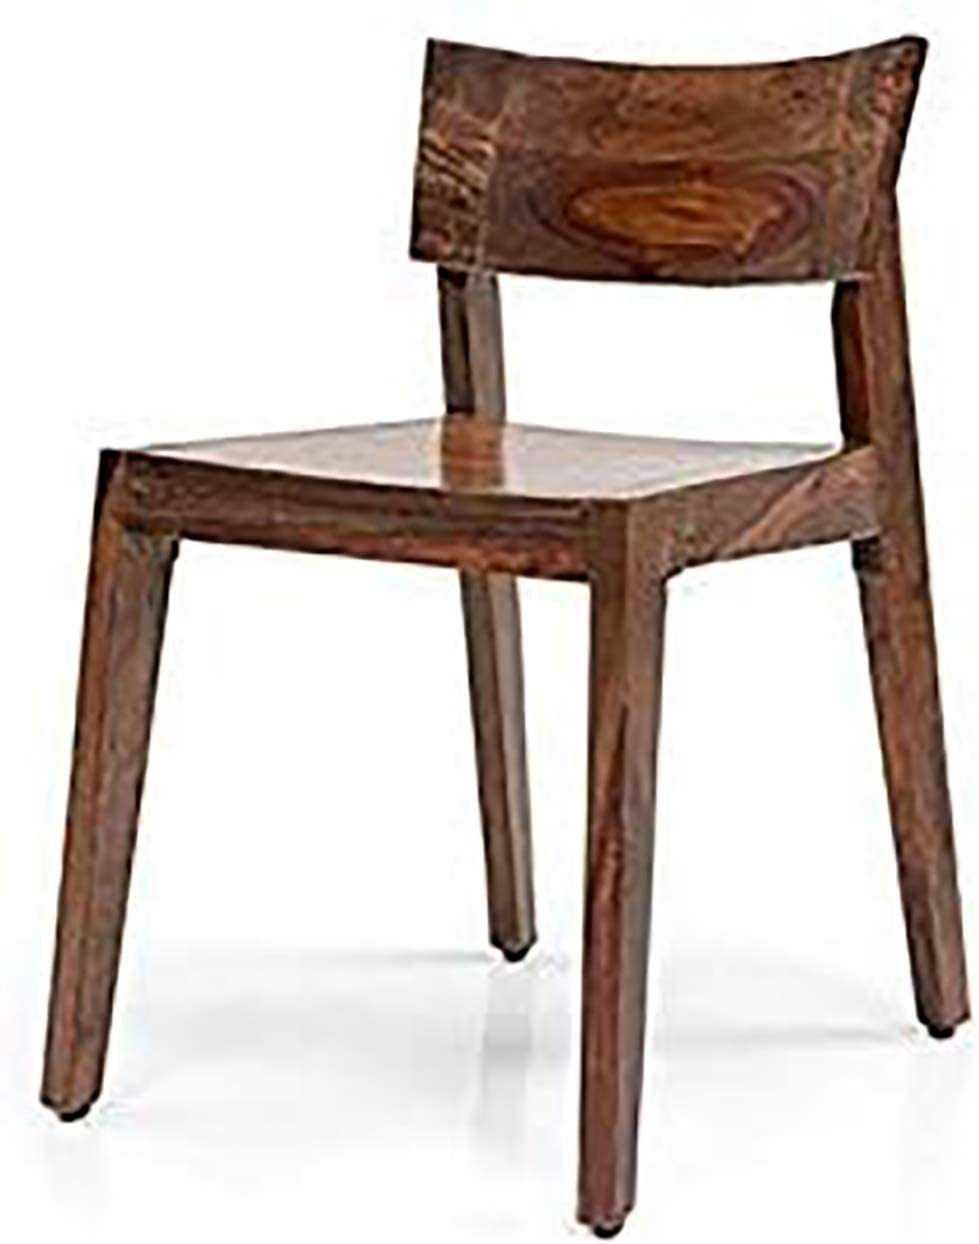 Boger sheesham wood study  chair for home (stone finish)